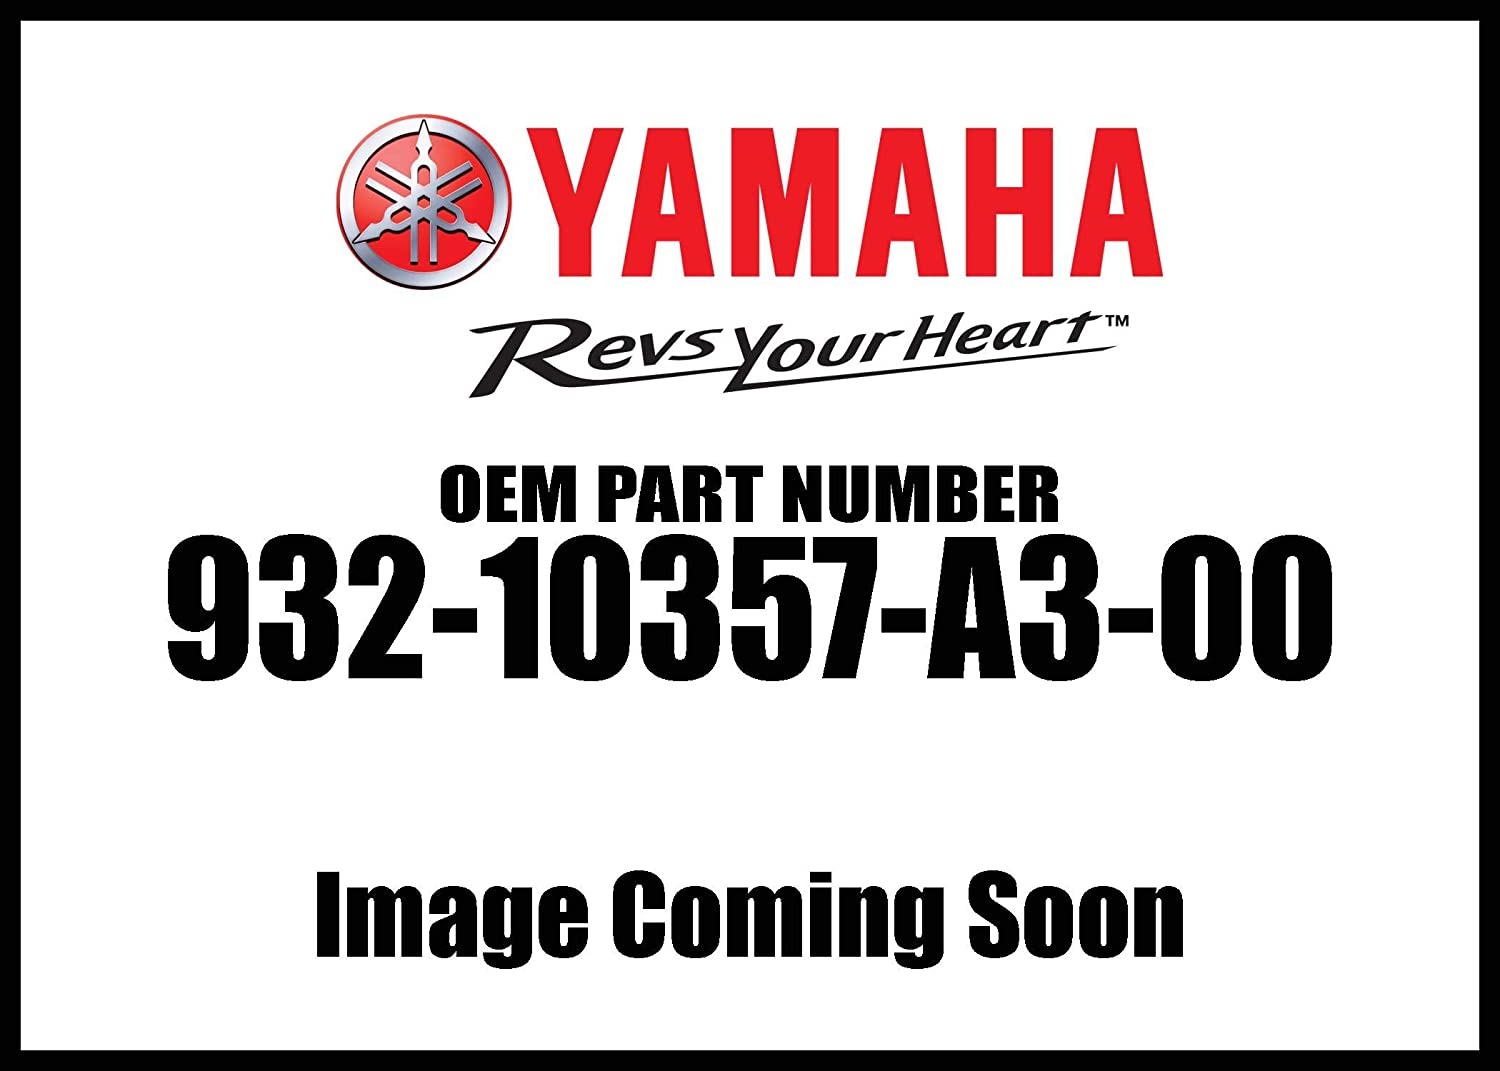 Yamaha 93210-357A3-00 O-RING; 93210357A300